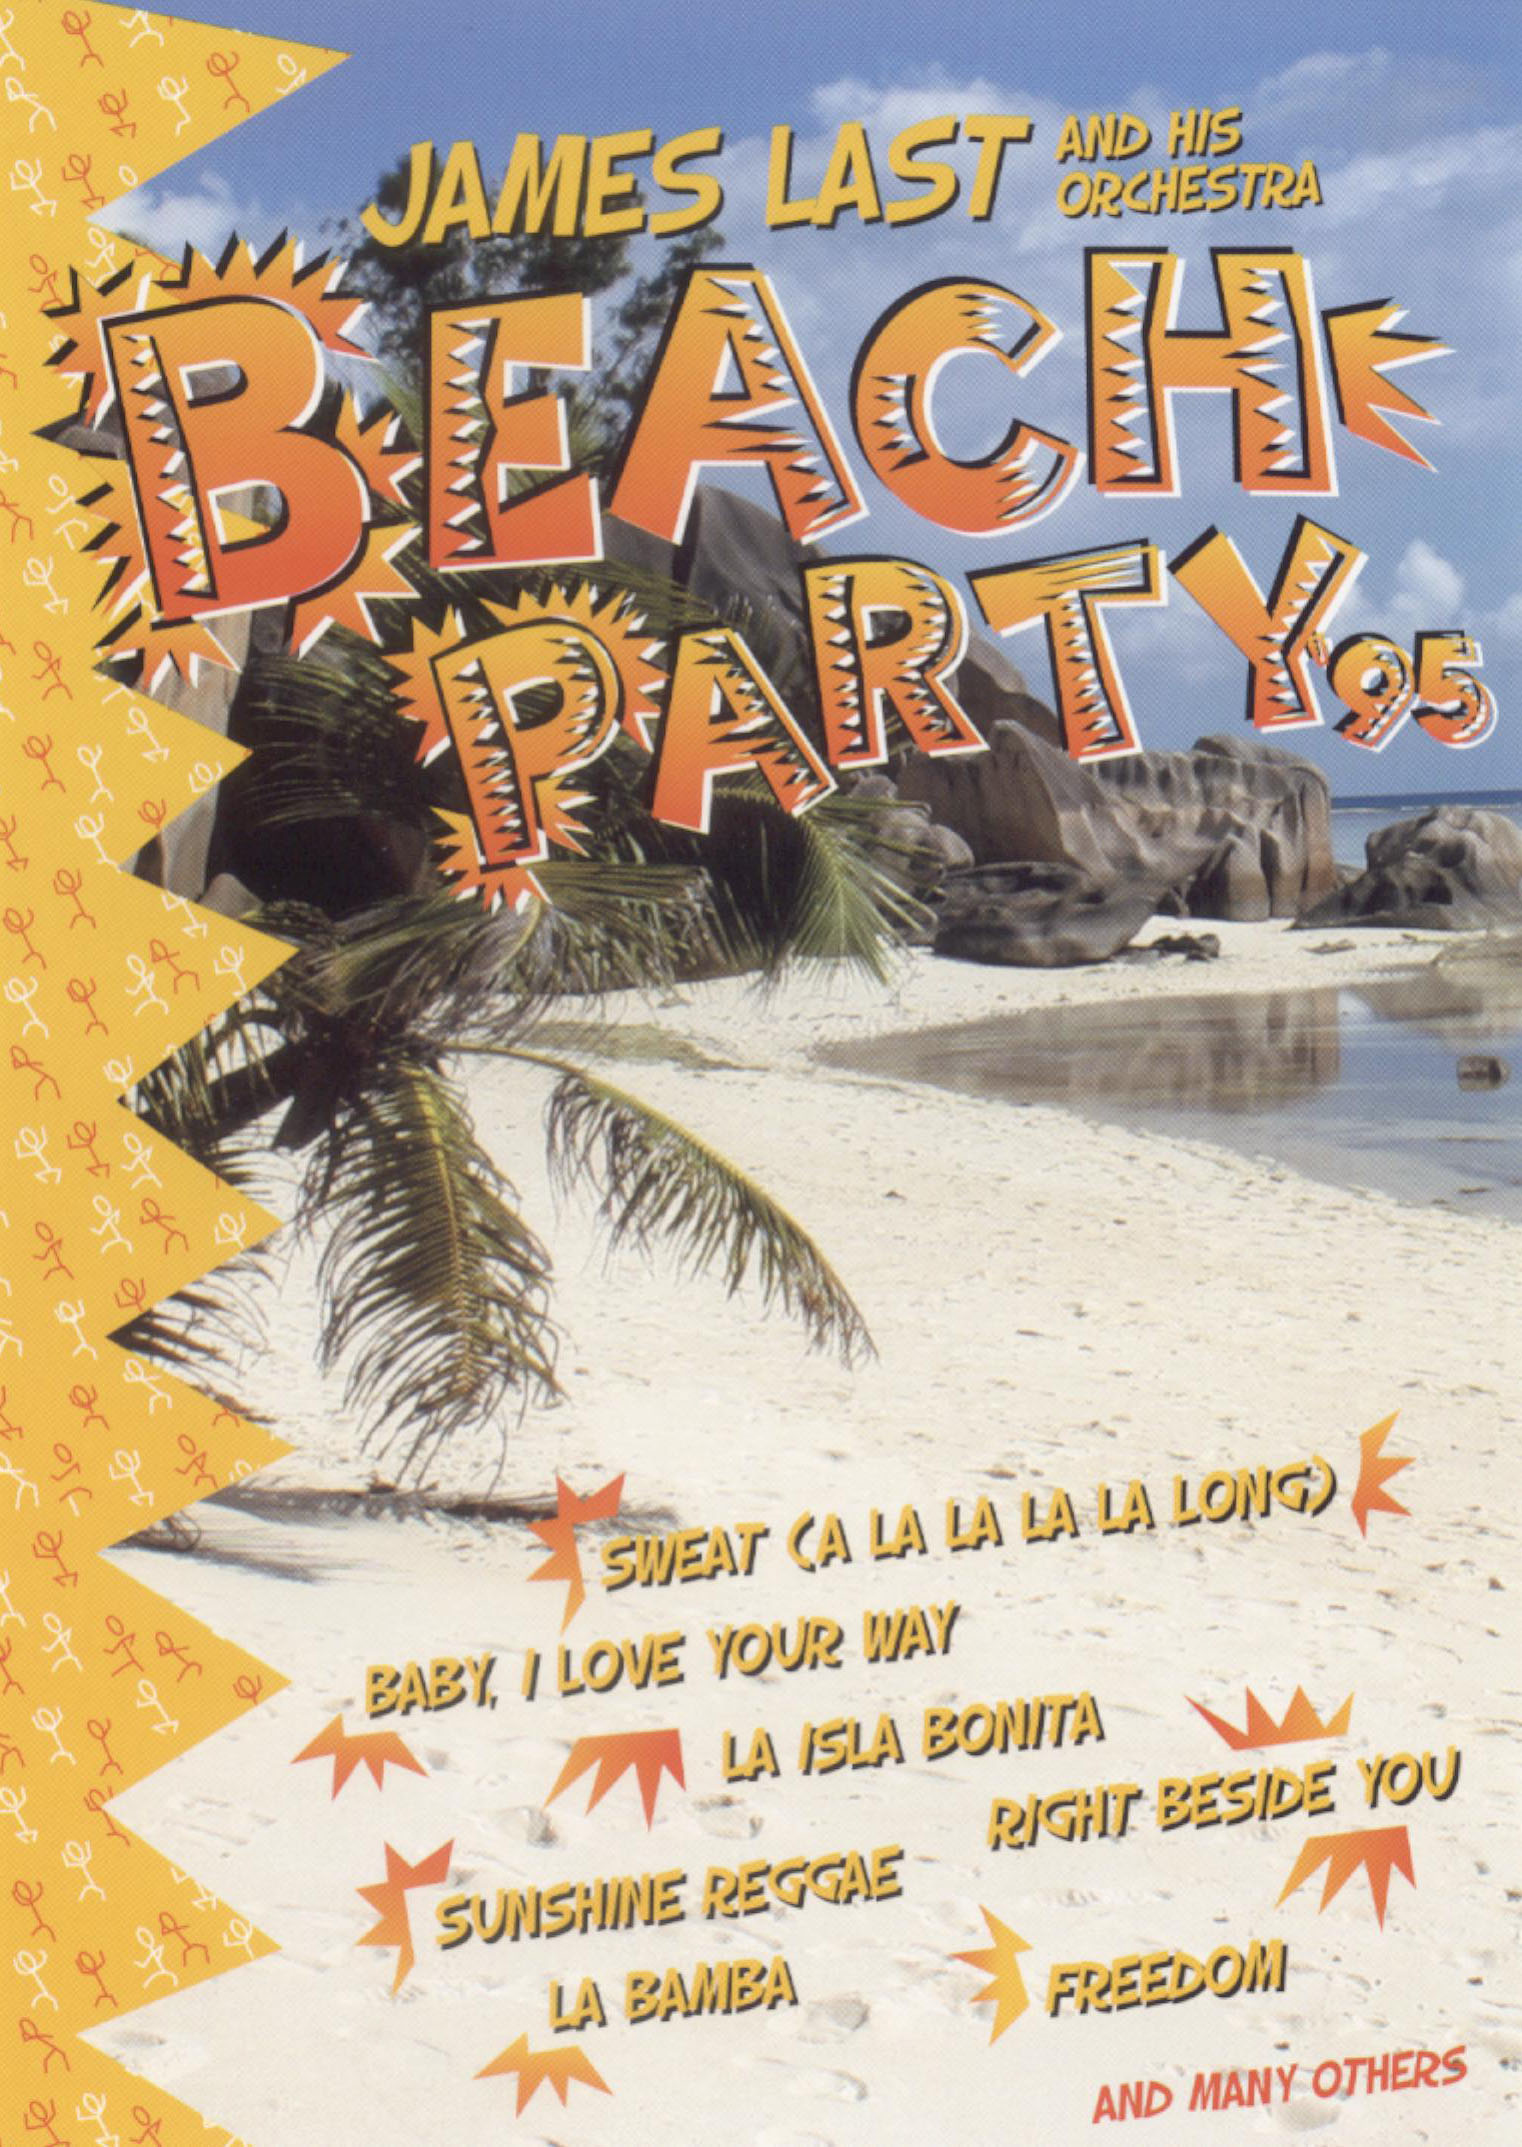 James Last and His Orchestra: Beach Party